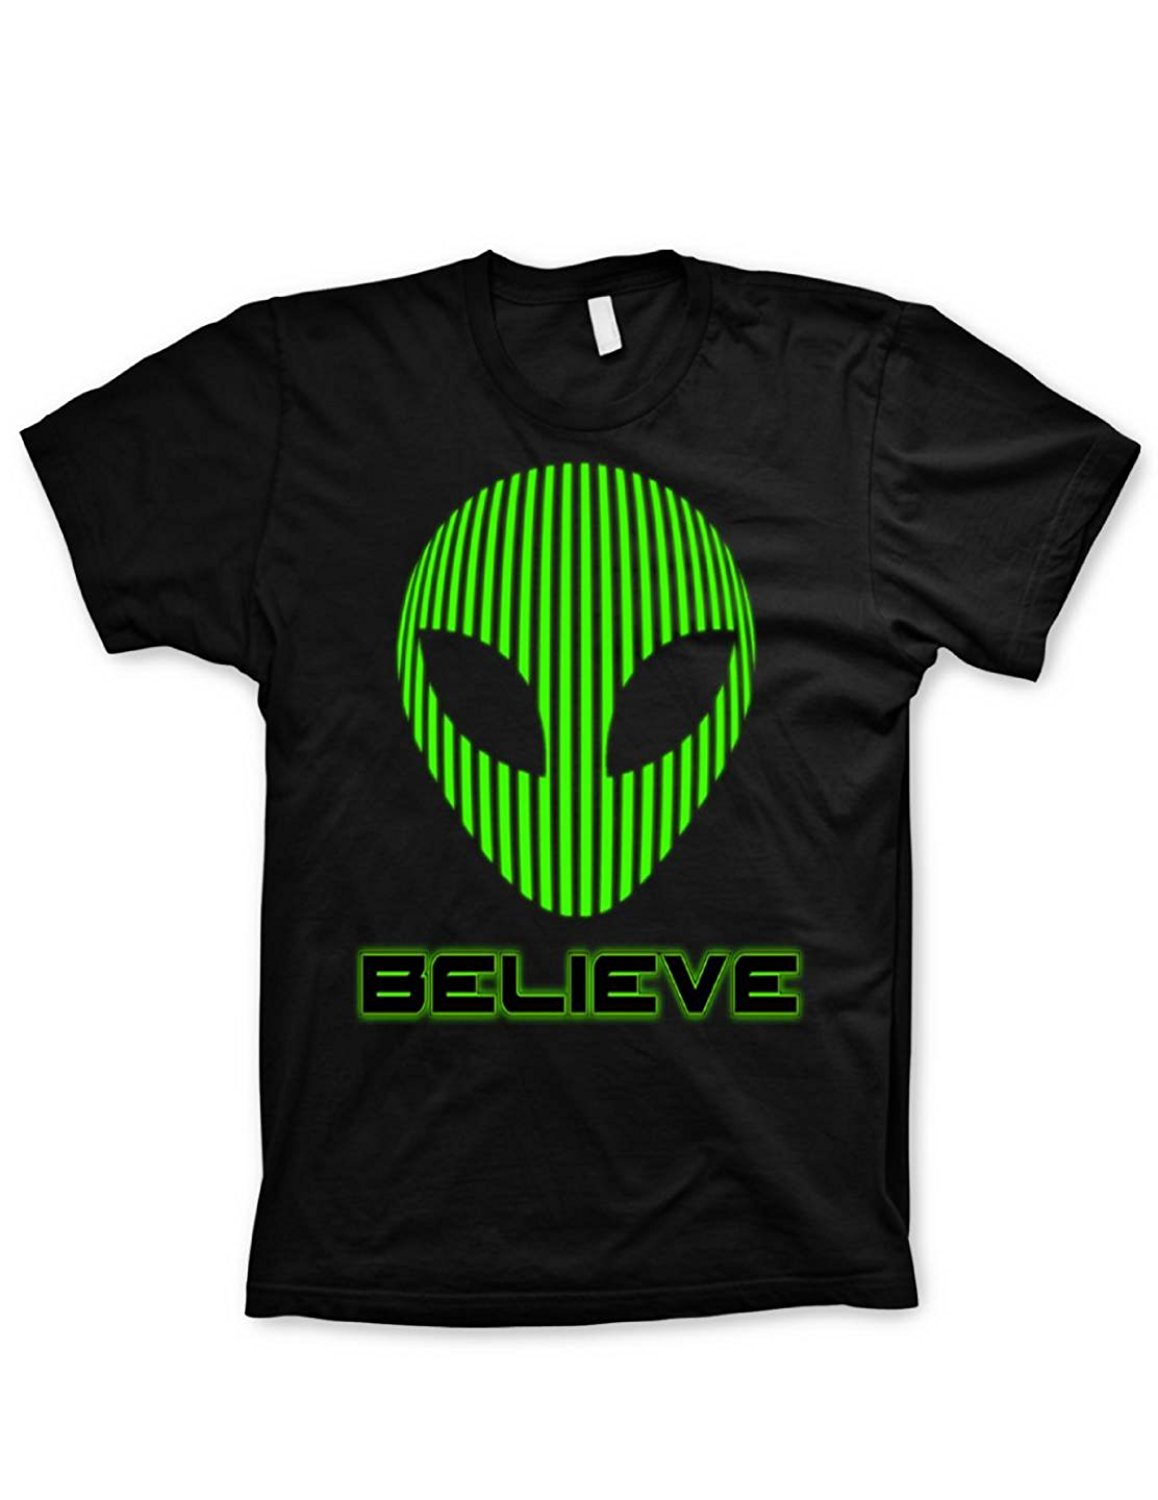 Alien Tshirt believe shirt funny tshirts science geeky nerd video game shirt